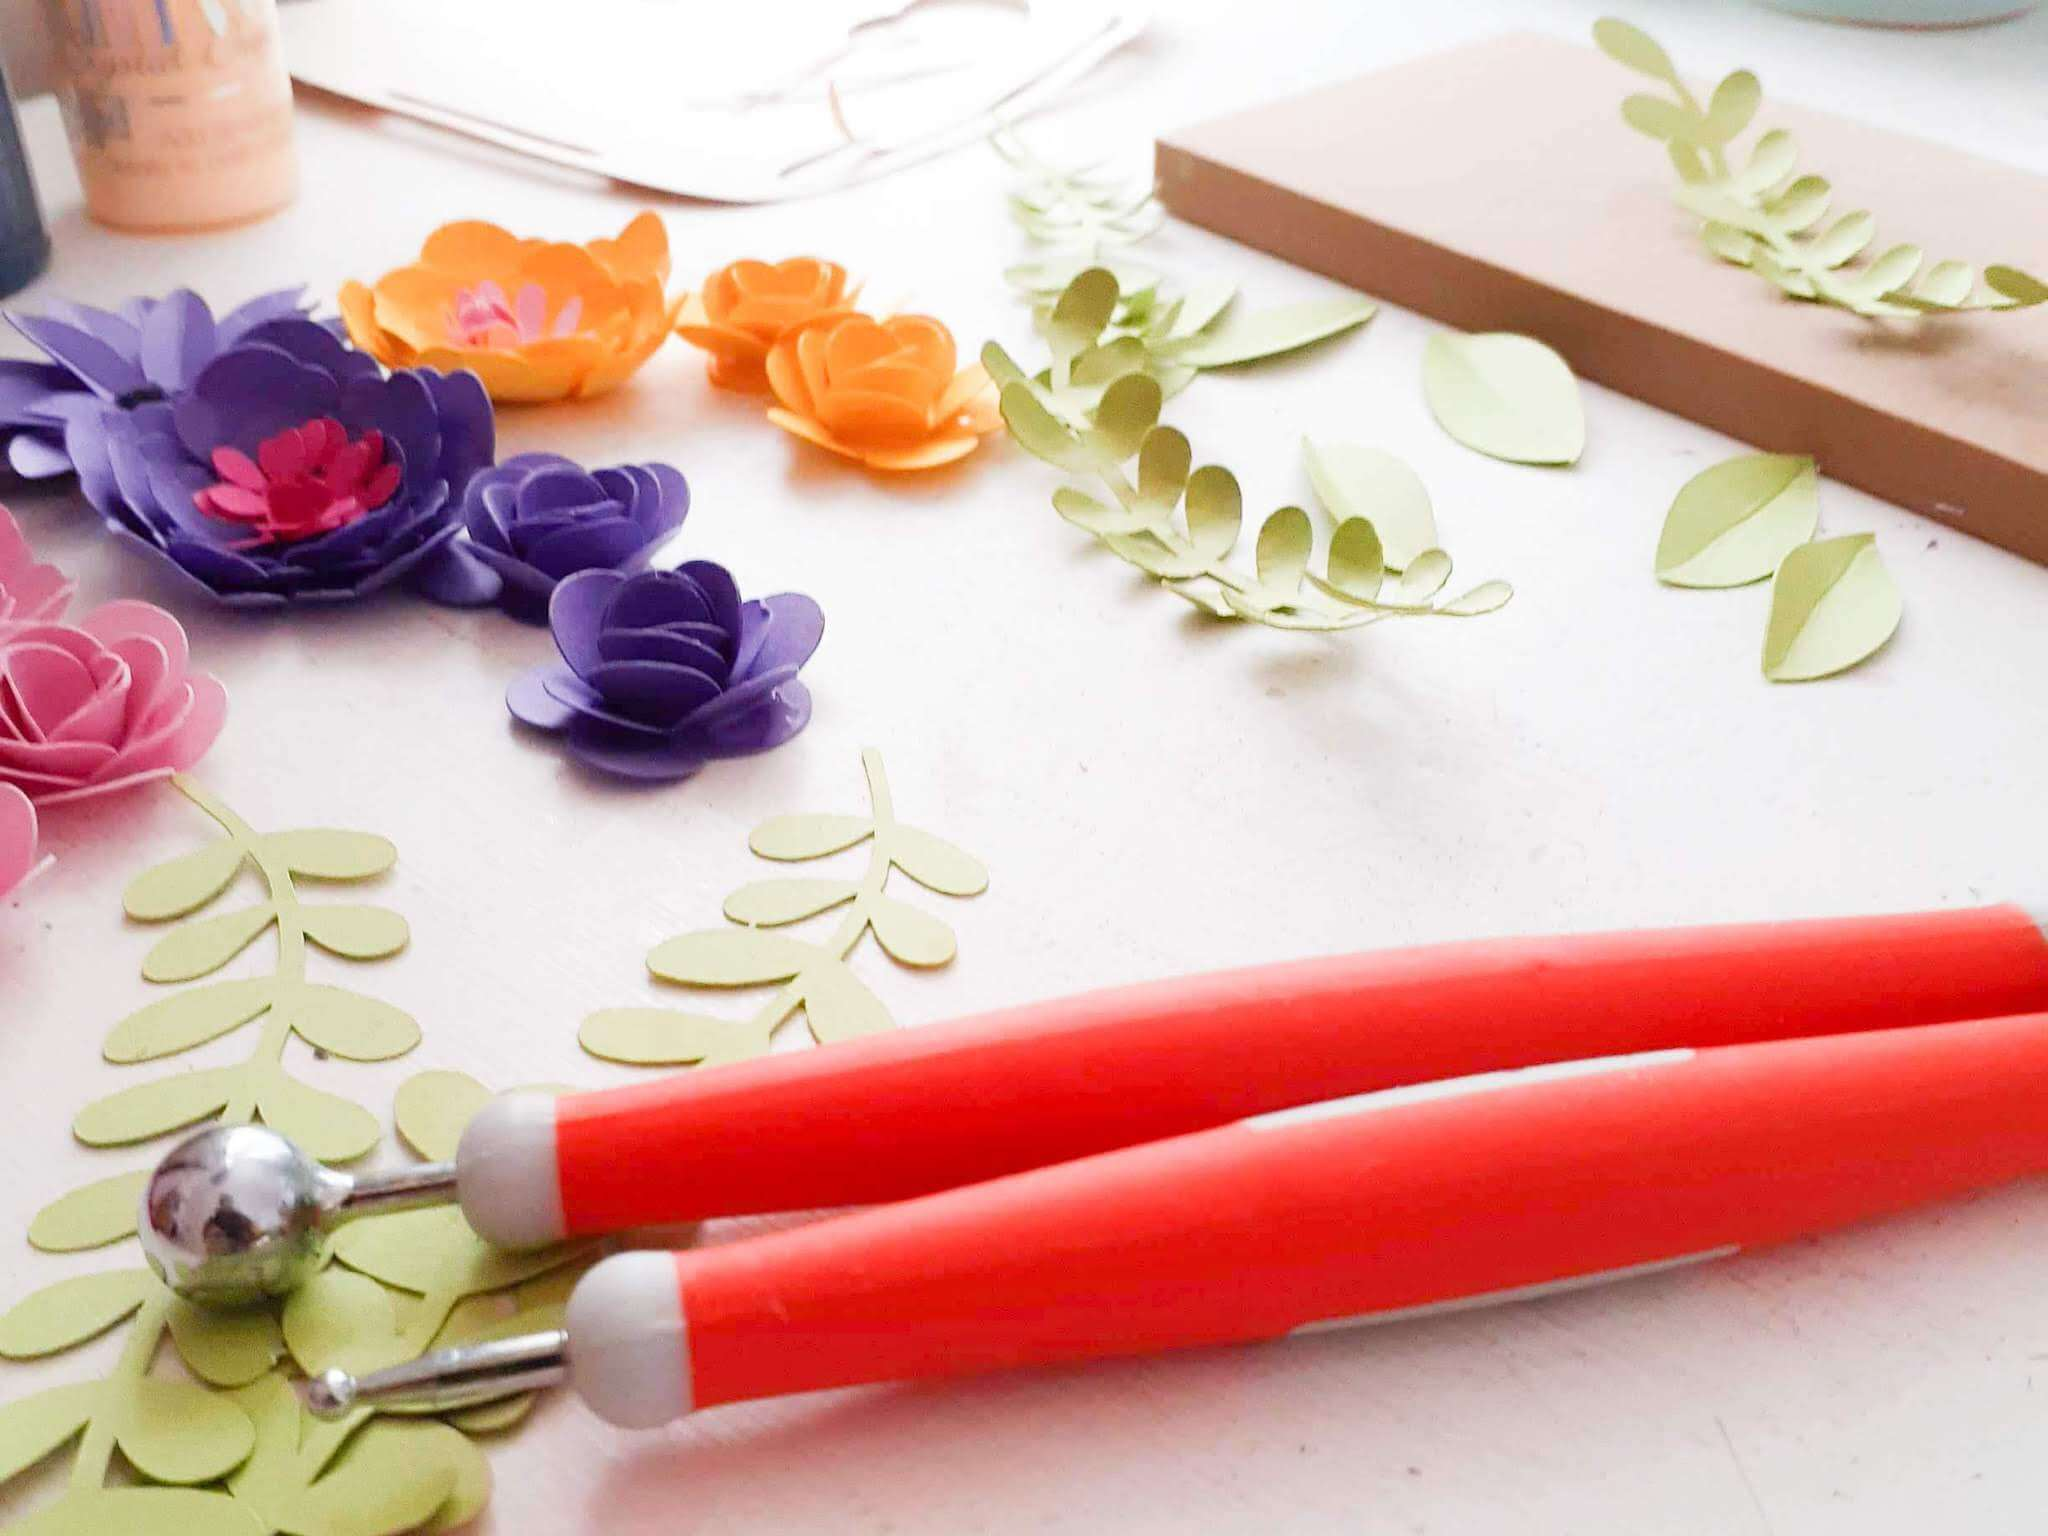 DIY Paper Flower Pieces and Tools